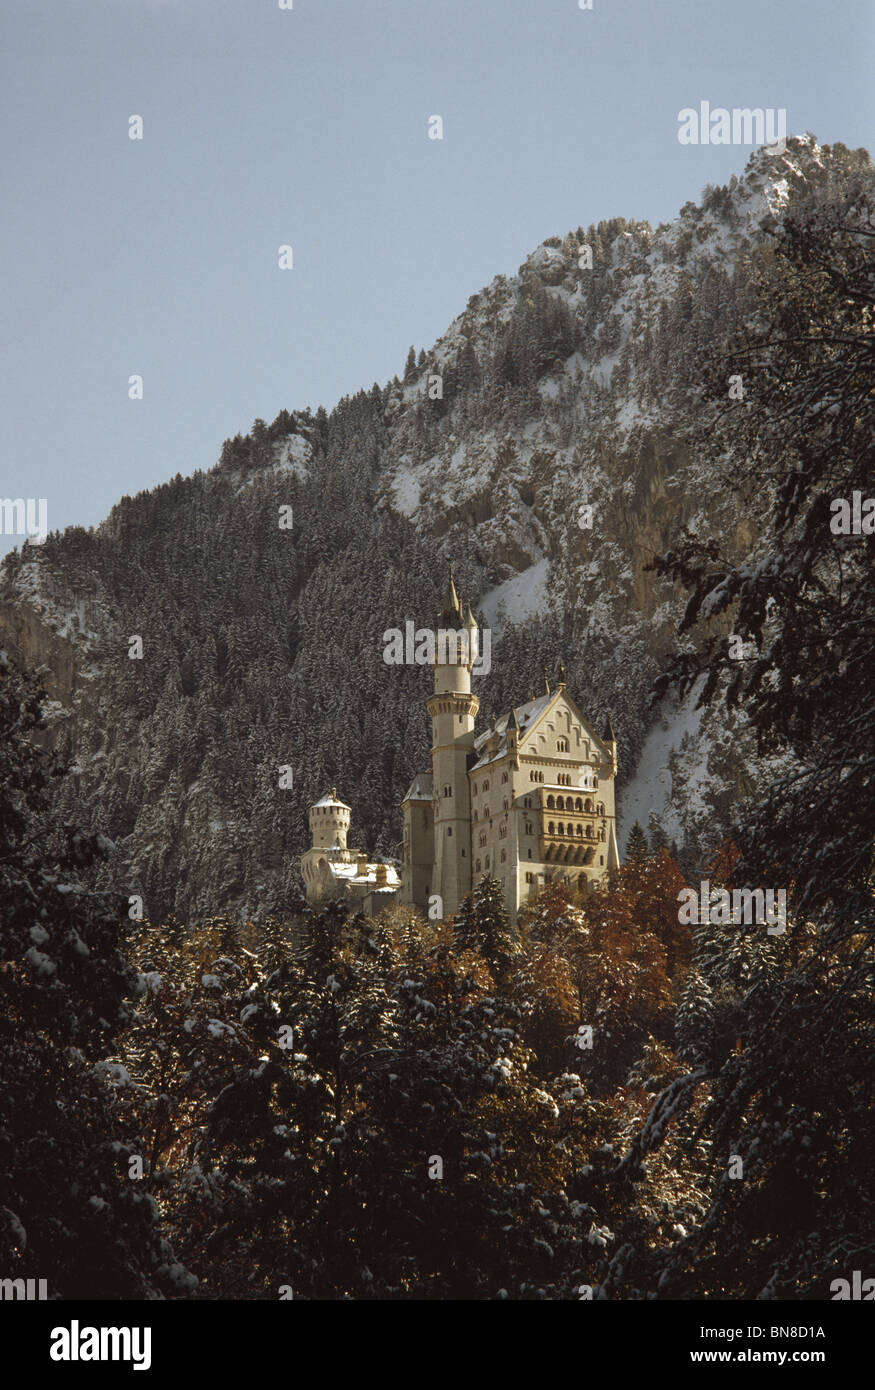 Exterior of Neuschwanstein castle, built by Ludwig II of Bavaria. - Stock Image